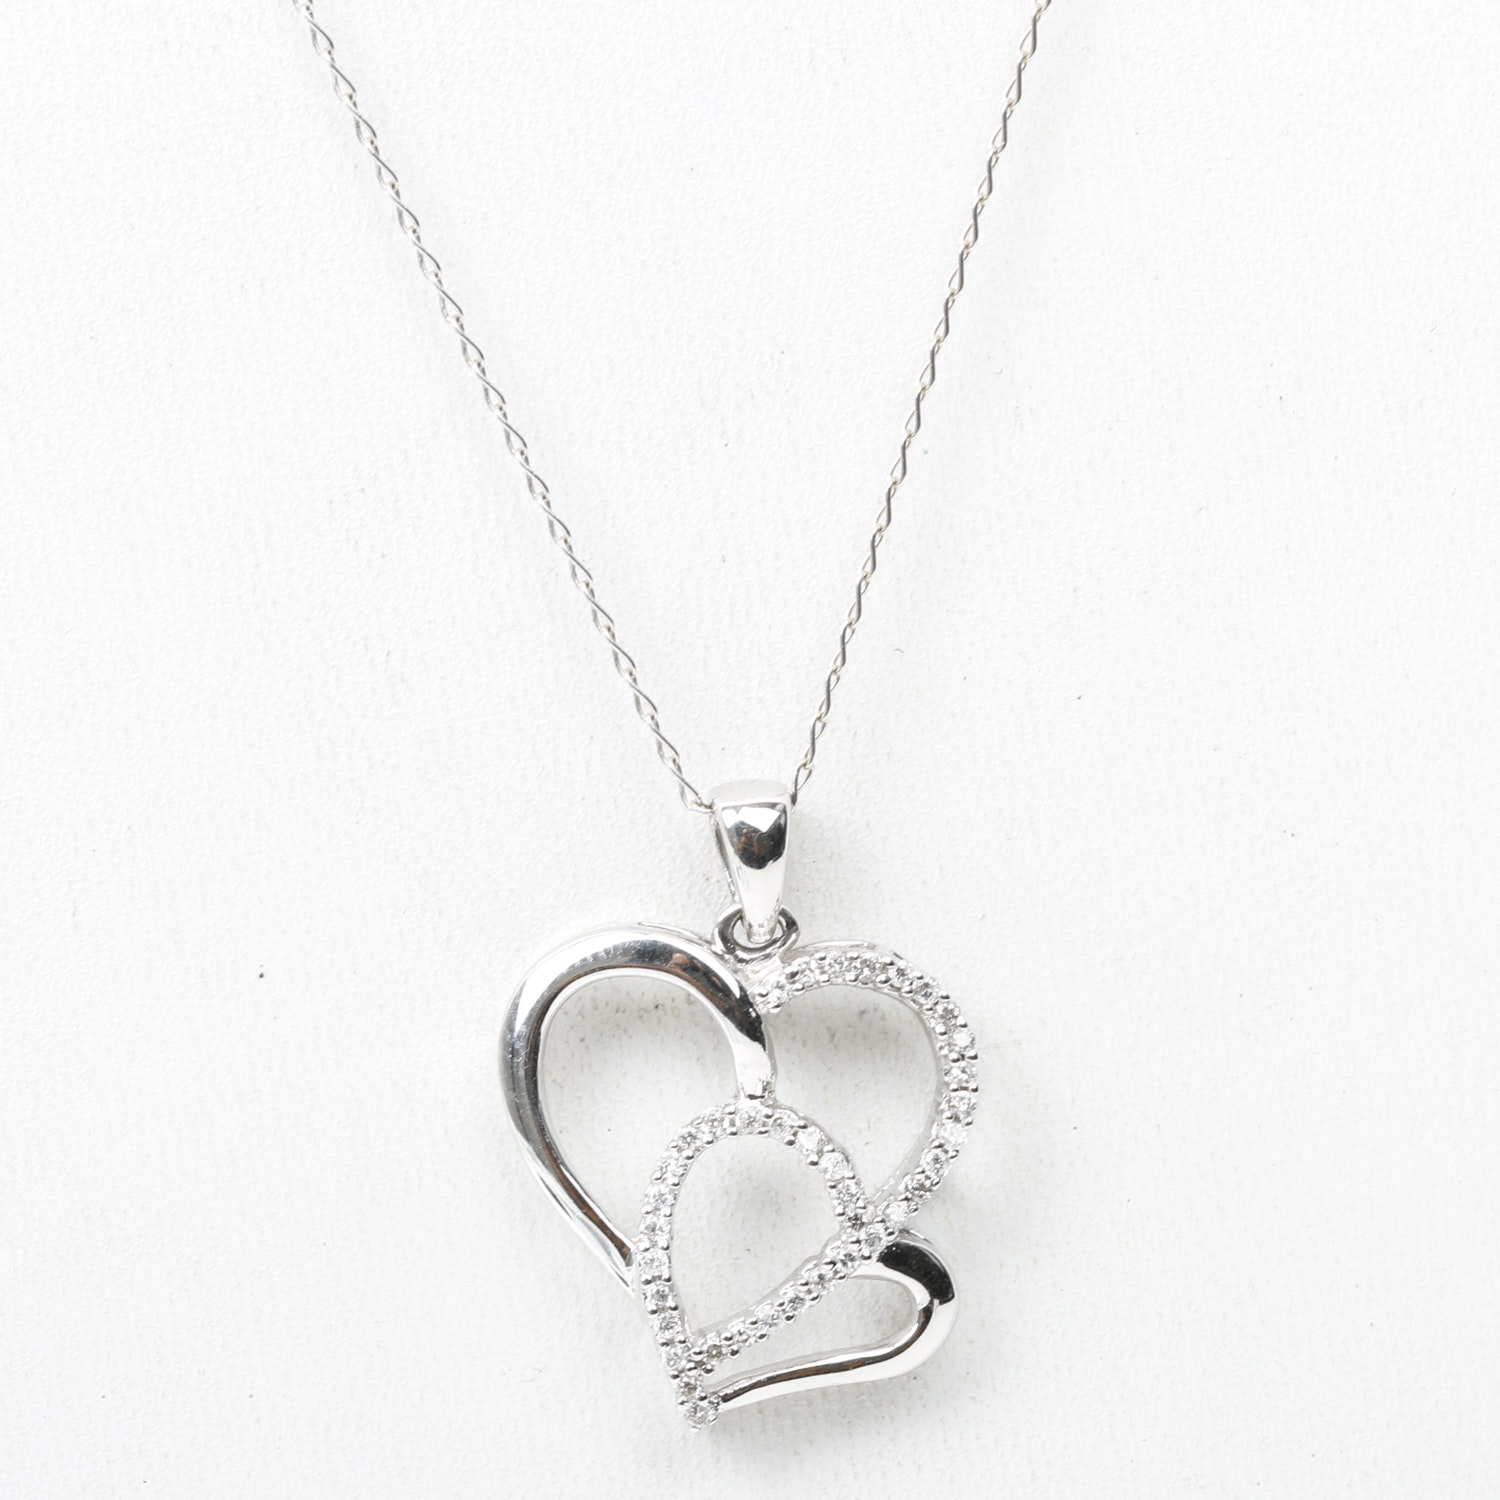 14K White Gold and Diamond Double Heart Pendant with 18K Chain